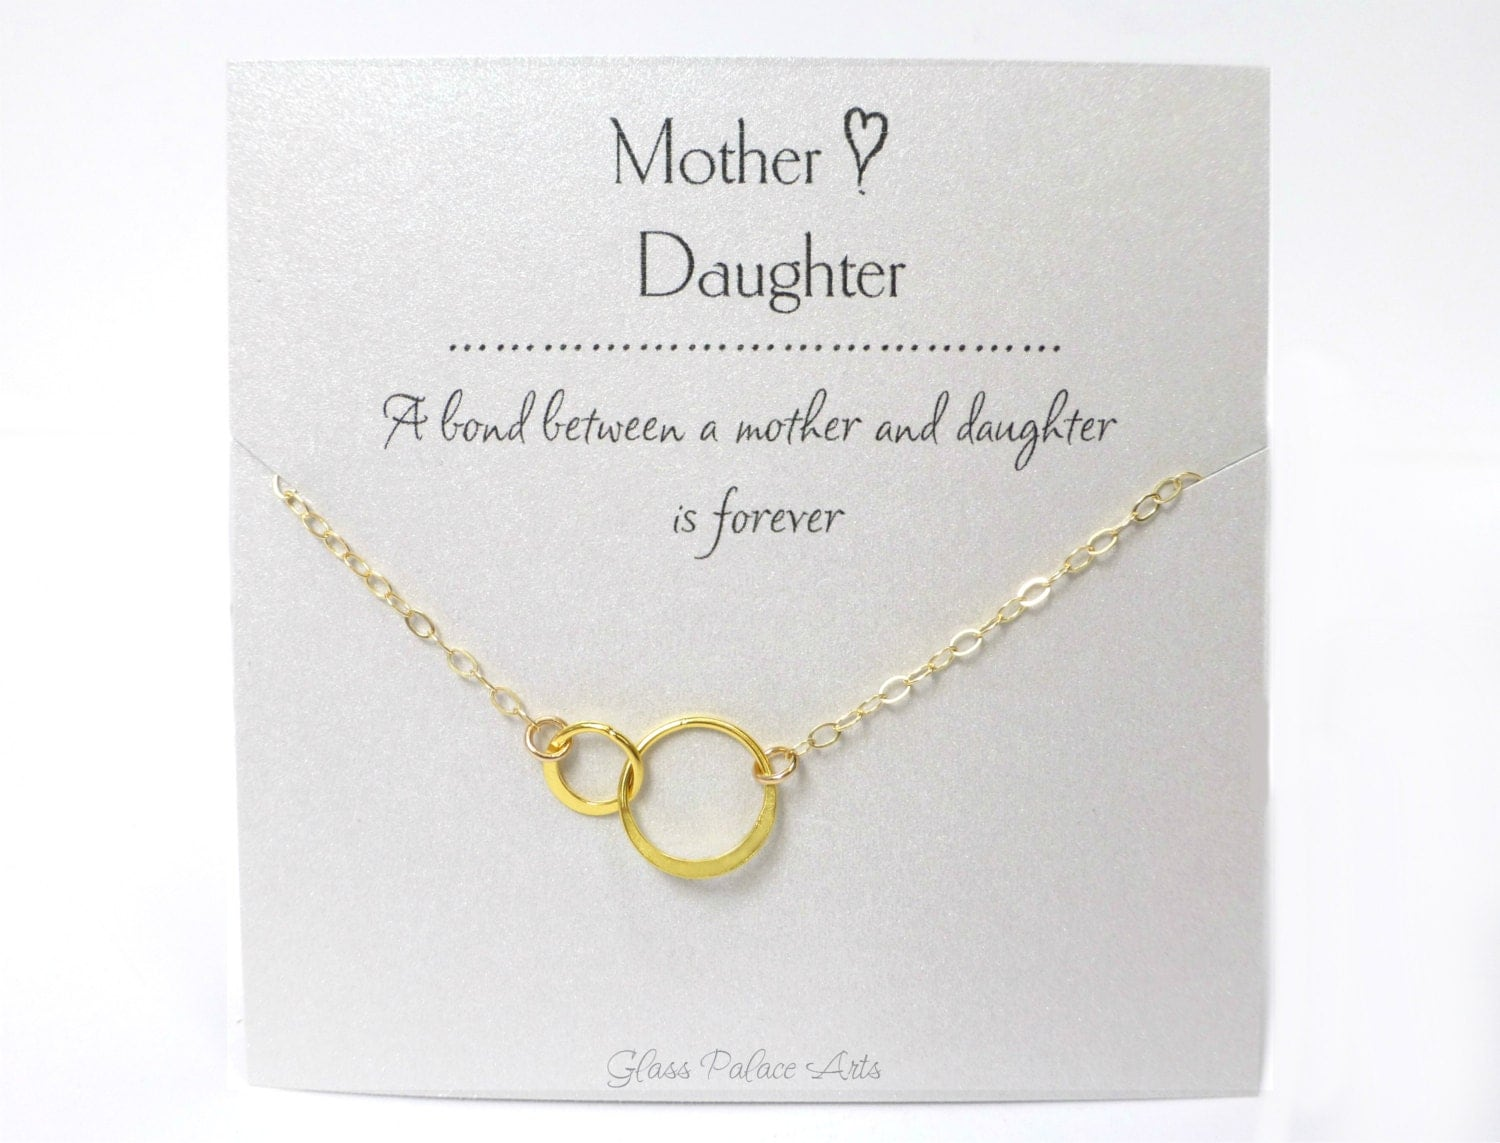 Mother Daughter Necklace Gift For Mom Personalized Mother